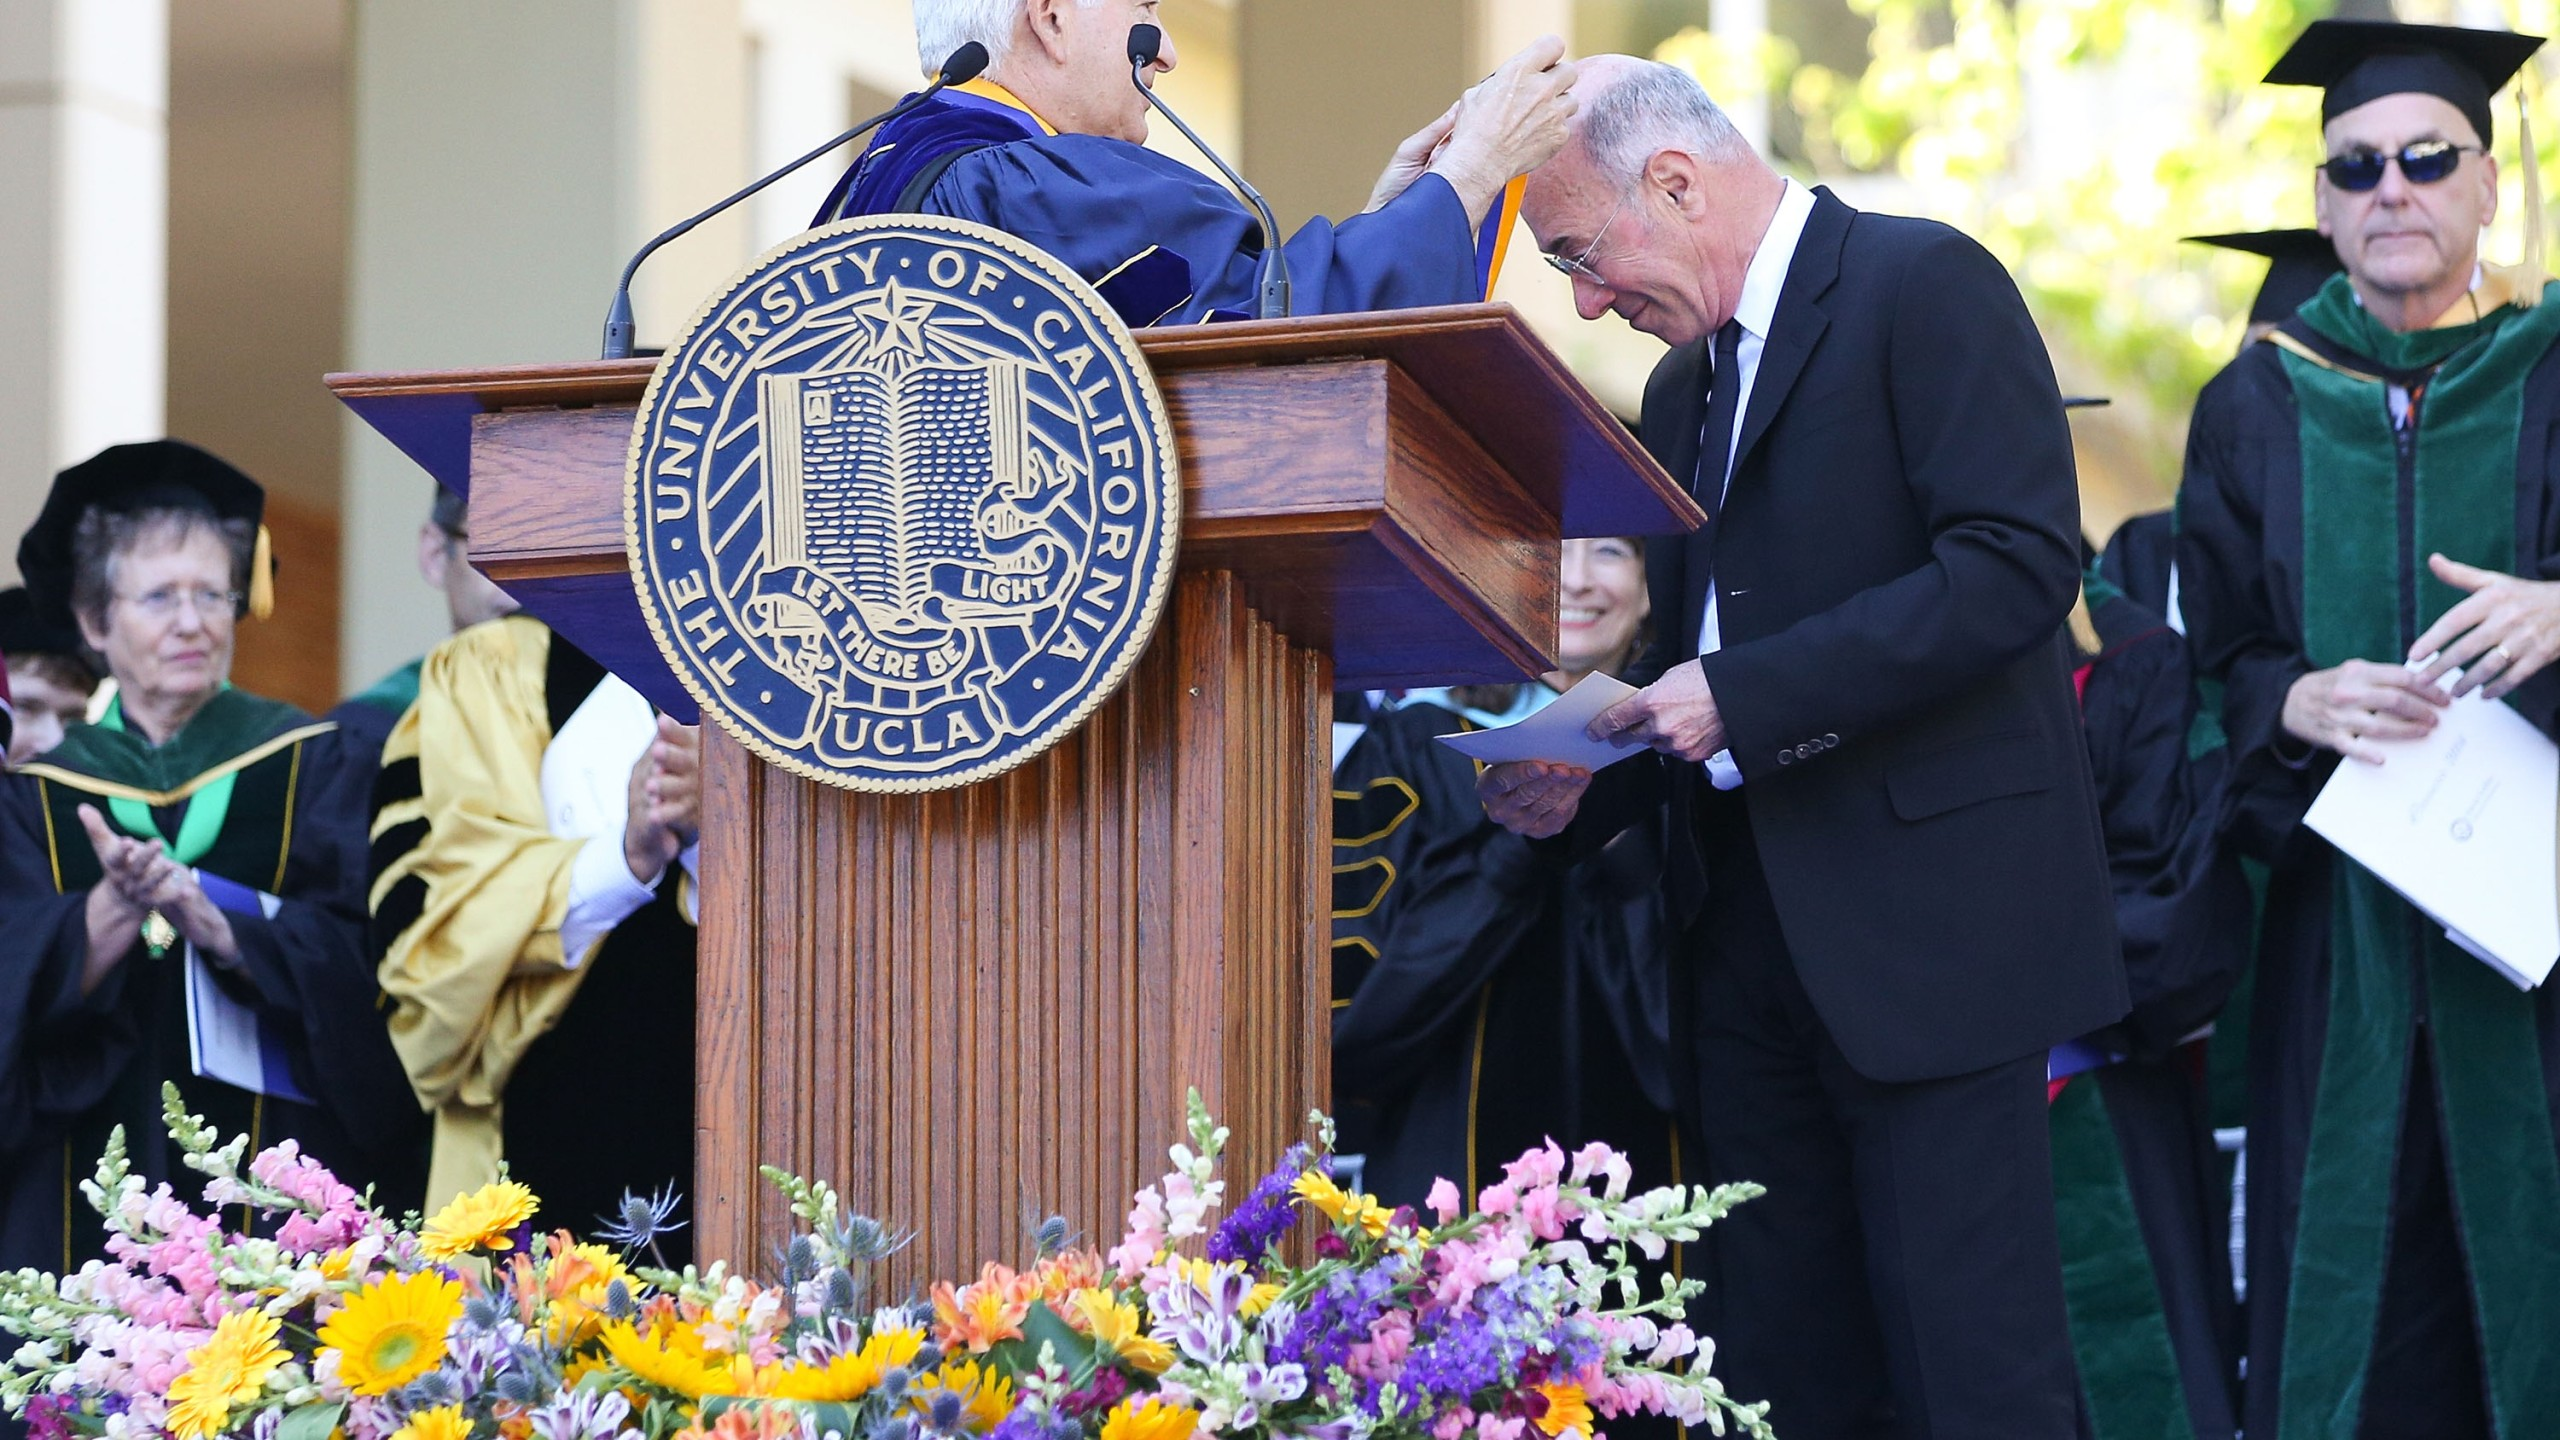 UCLA Chancellor Gene Block presents David Geffen with the UCLA Medal, the highest honor bestowed by the university, during the David Geffen School of Medicine at UCLAs Hippocratic Oath Ceremony on May 30, 2014 in Westwood. (Credit: Imeh Akpanudosen/Getty Images for UCLA)